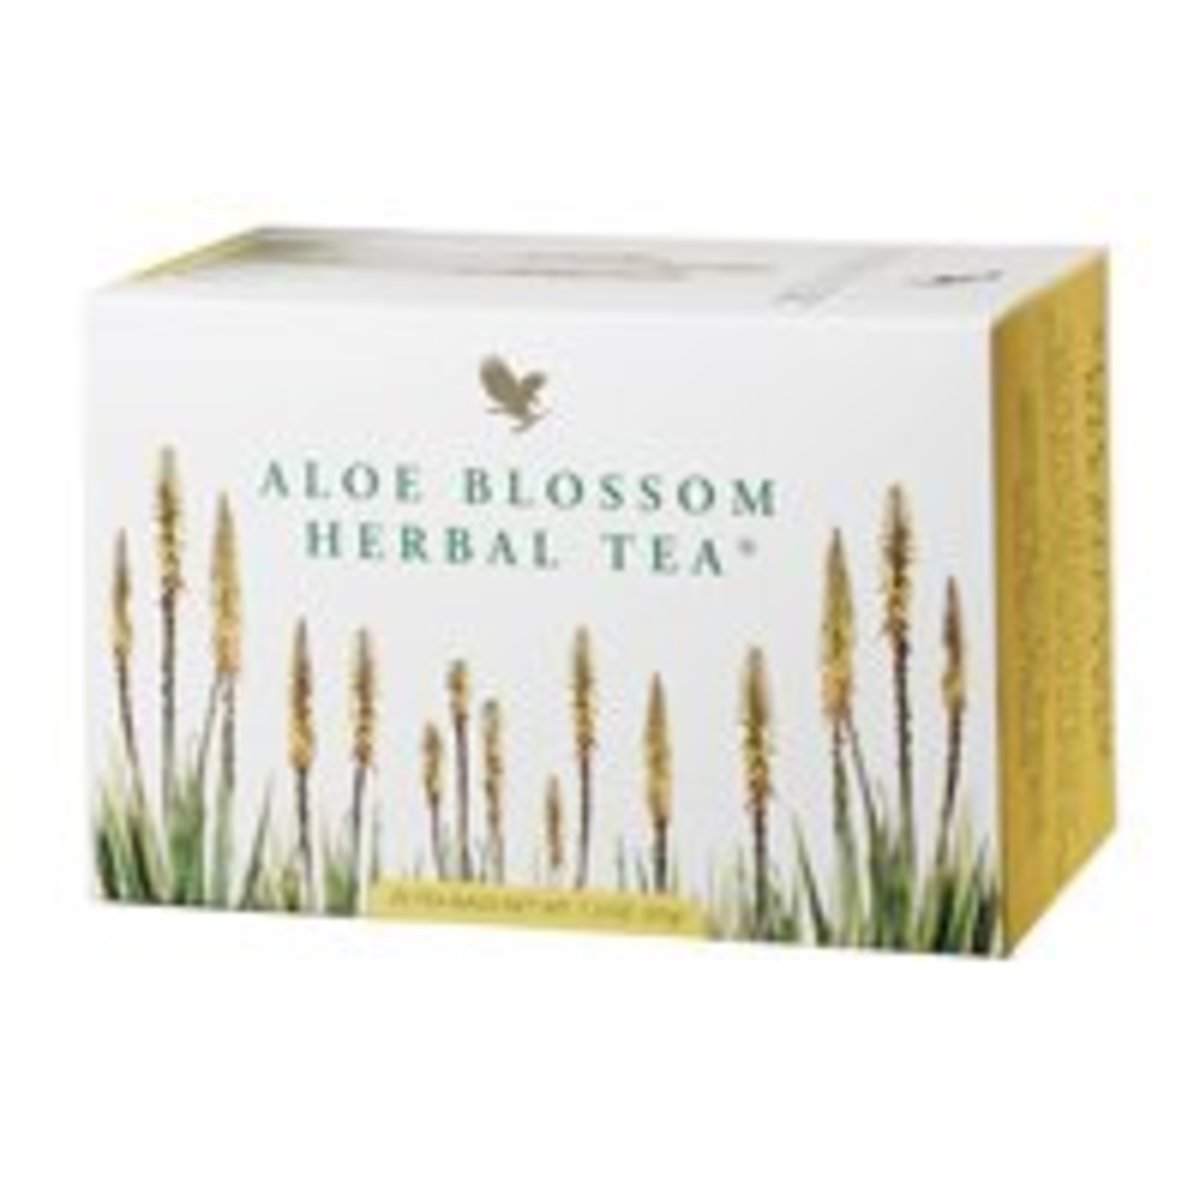 For Aloe Blossom Herbal Tea and Many Other Aloe Vera Based Health and Nutrtion Products visit us: